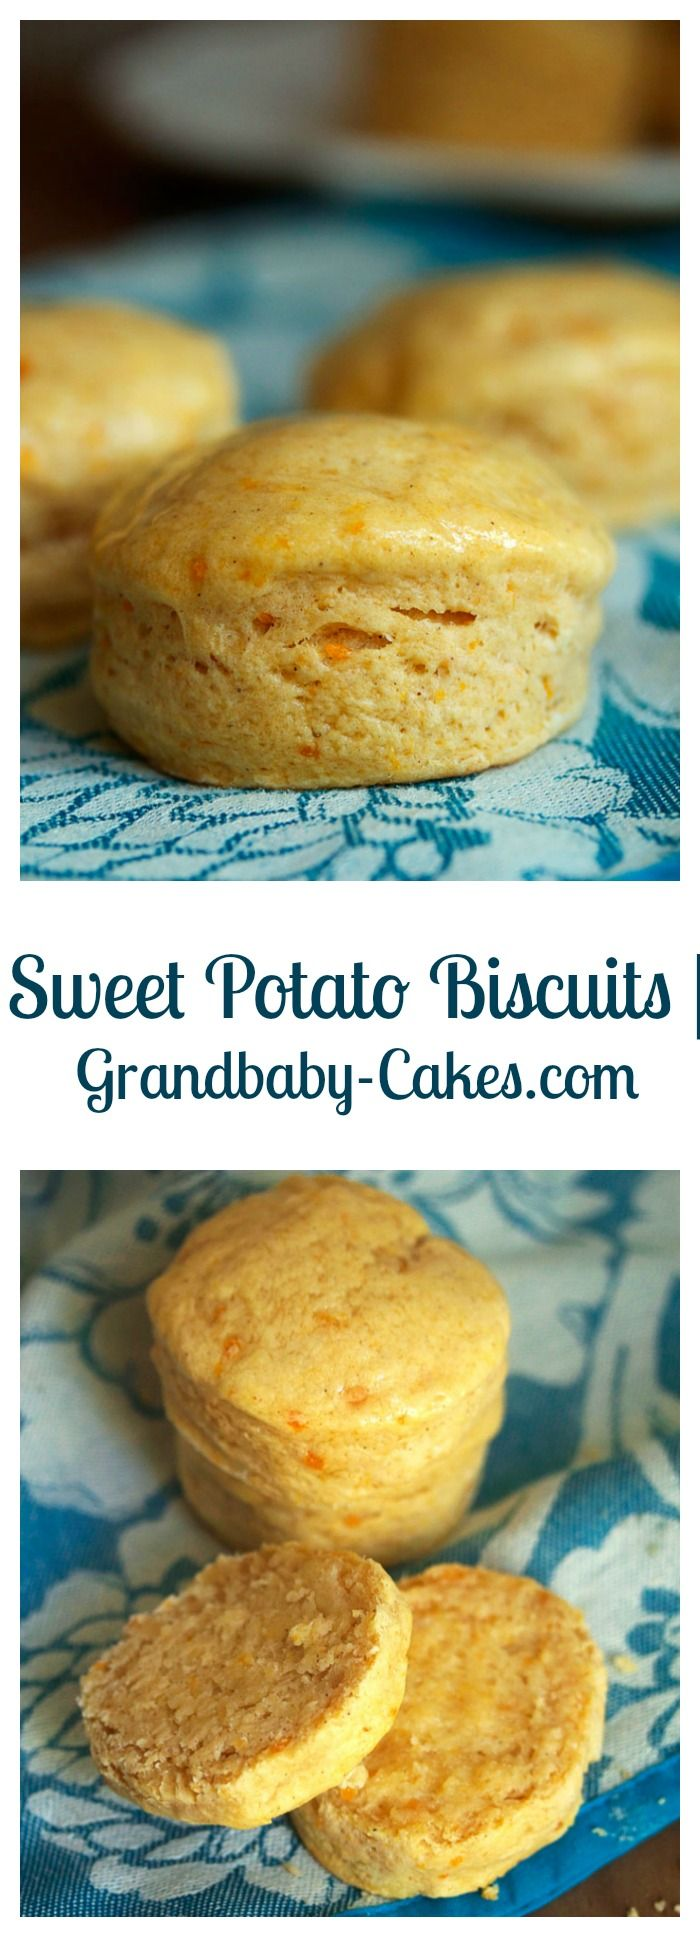 Spiced Sweet Potato Biscuits | Grandbaby-Cakes.com